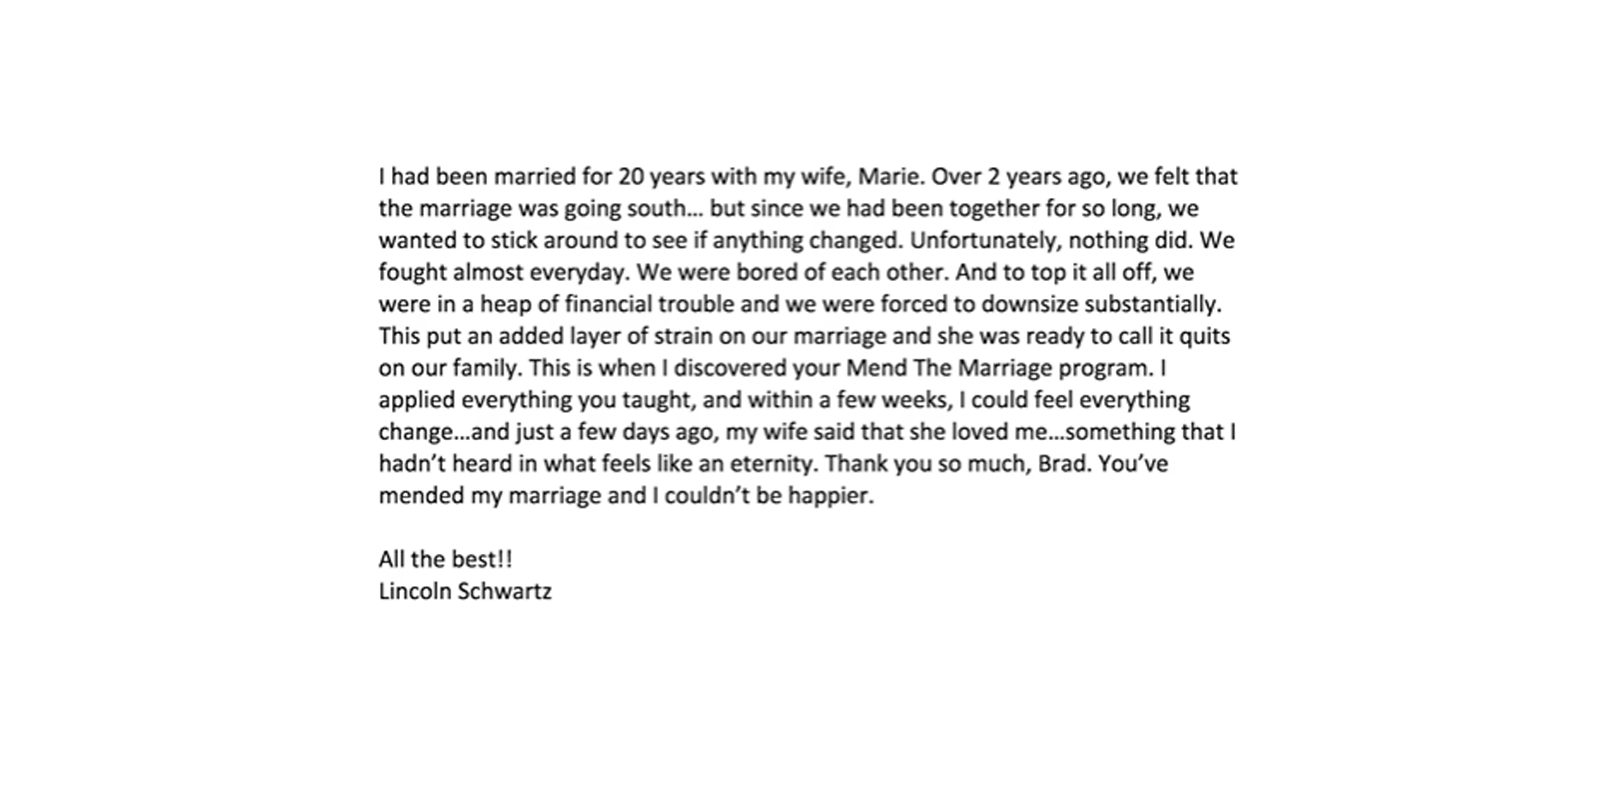 complete Mend The Marriage reviews